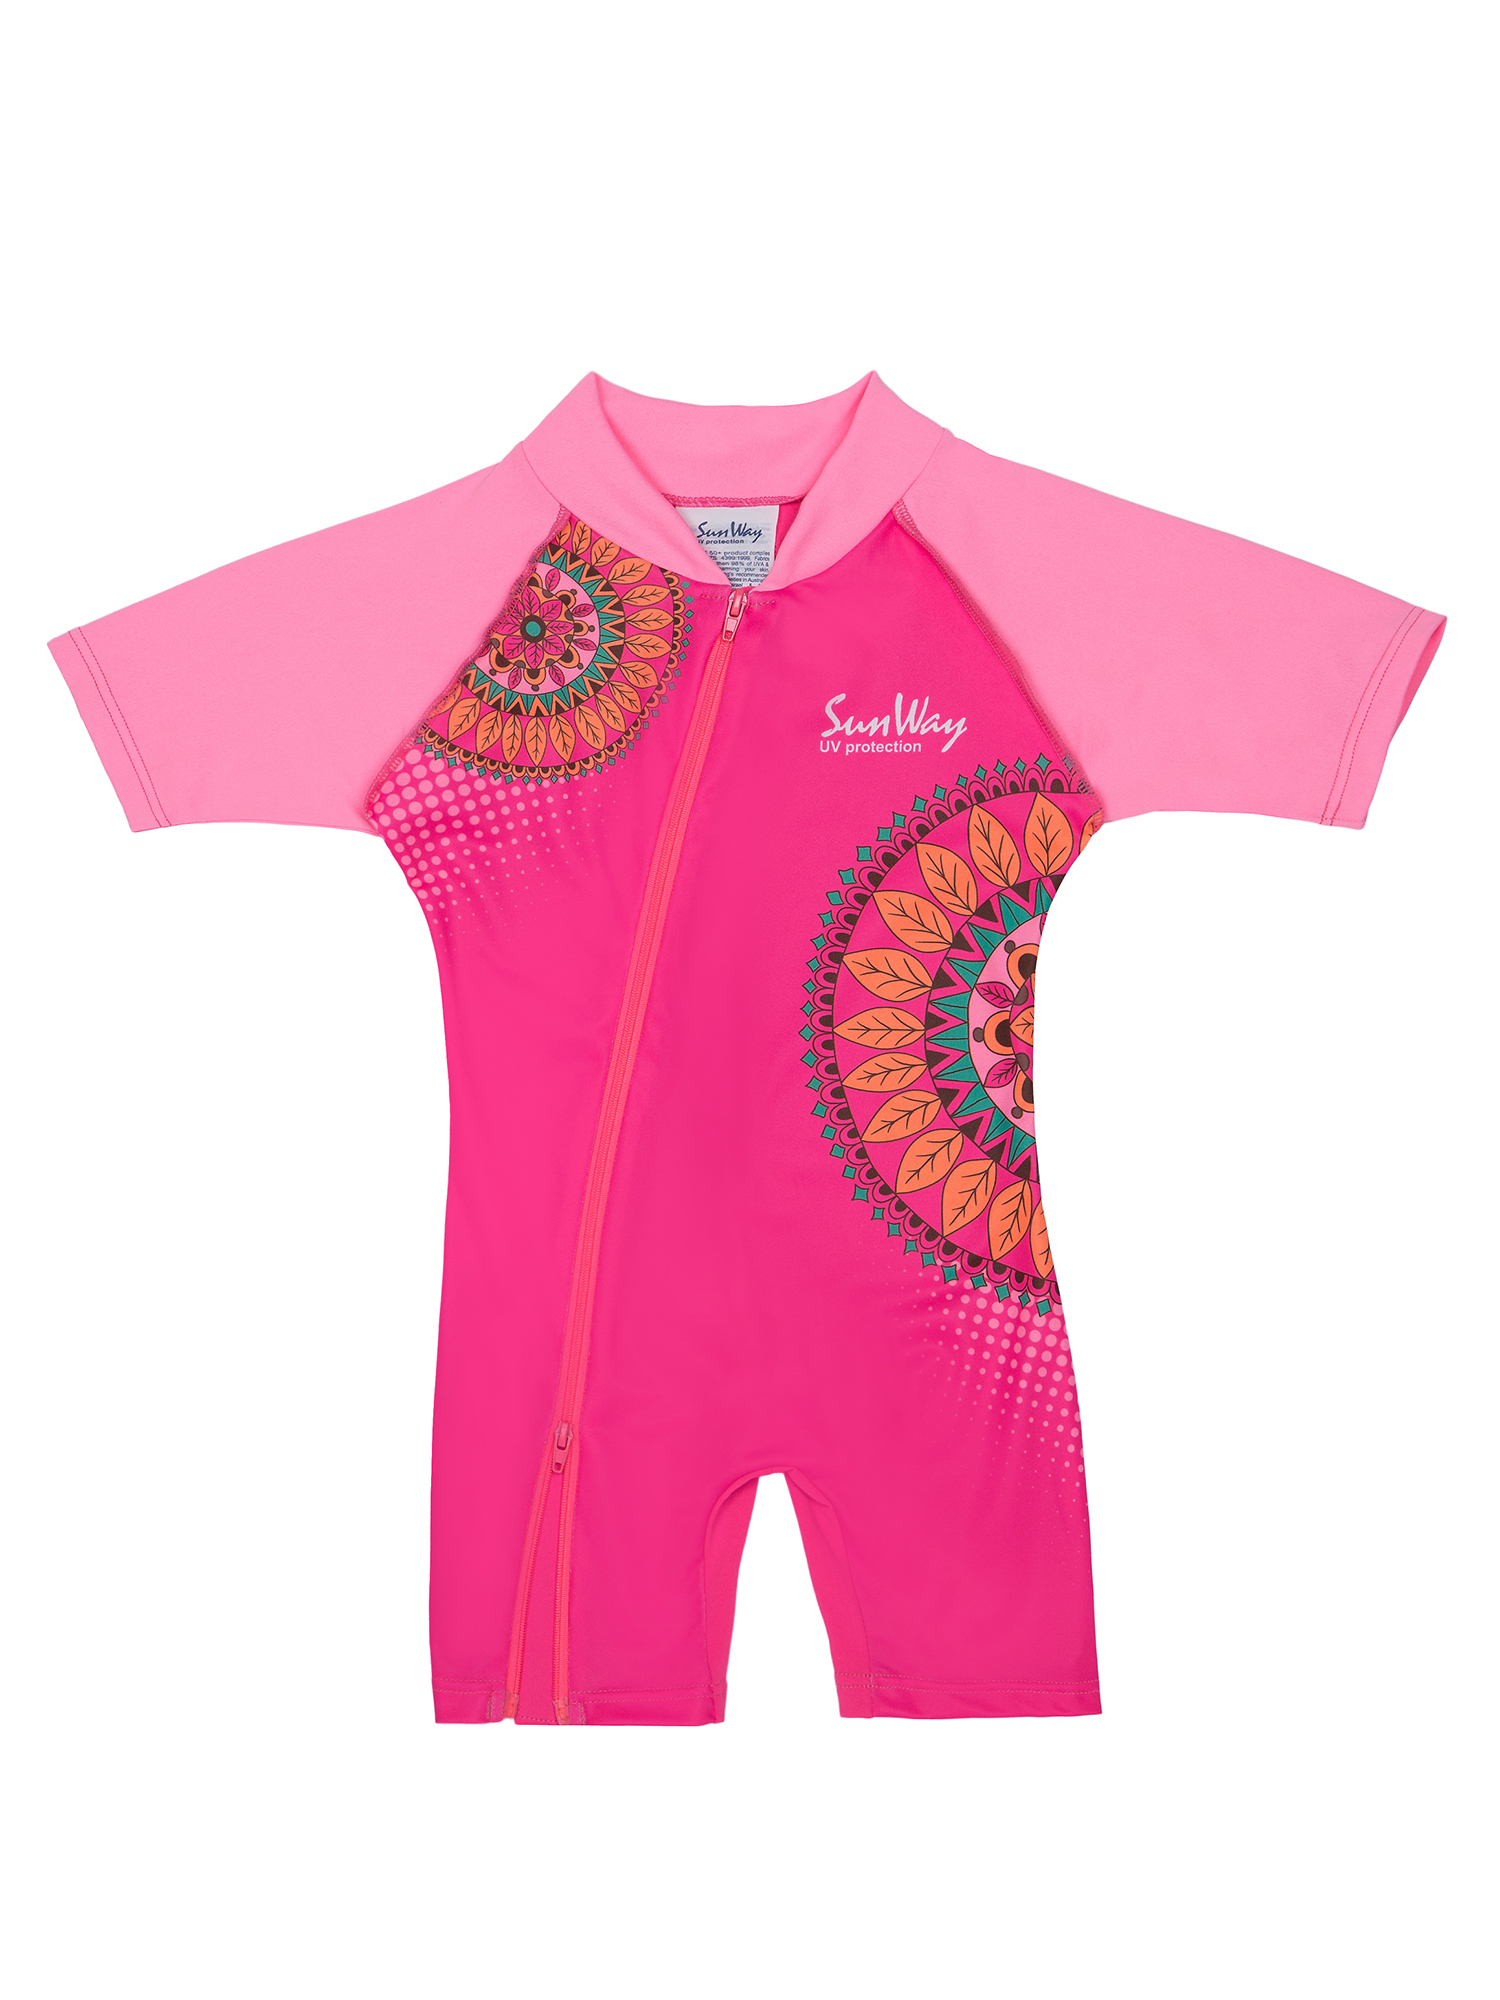 UV Skinz Swim & Sun Shirts, UV Swimwear & Other Sun Protection Clothing. UV Skinz sun protective clothes are stylish and carry a UPF rating of 50+, which blocks out over 98% of the sun's harmful rays, protecting delicate skin from damaging sunburns. Sunscreen isn't always enough and is .